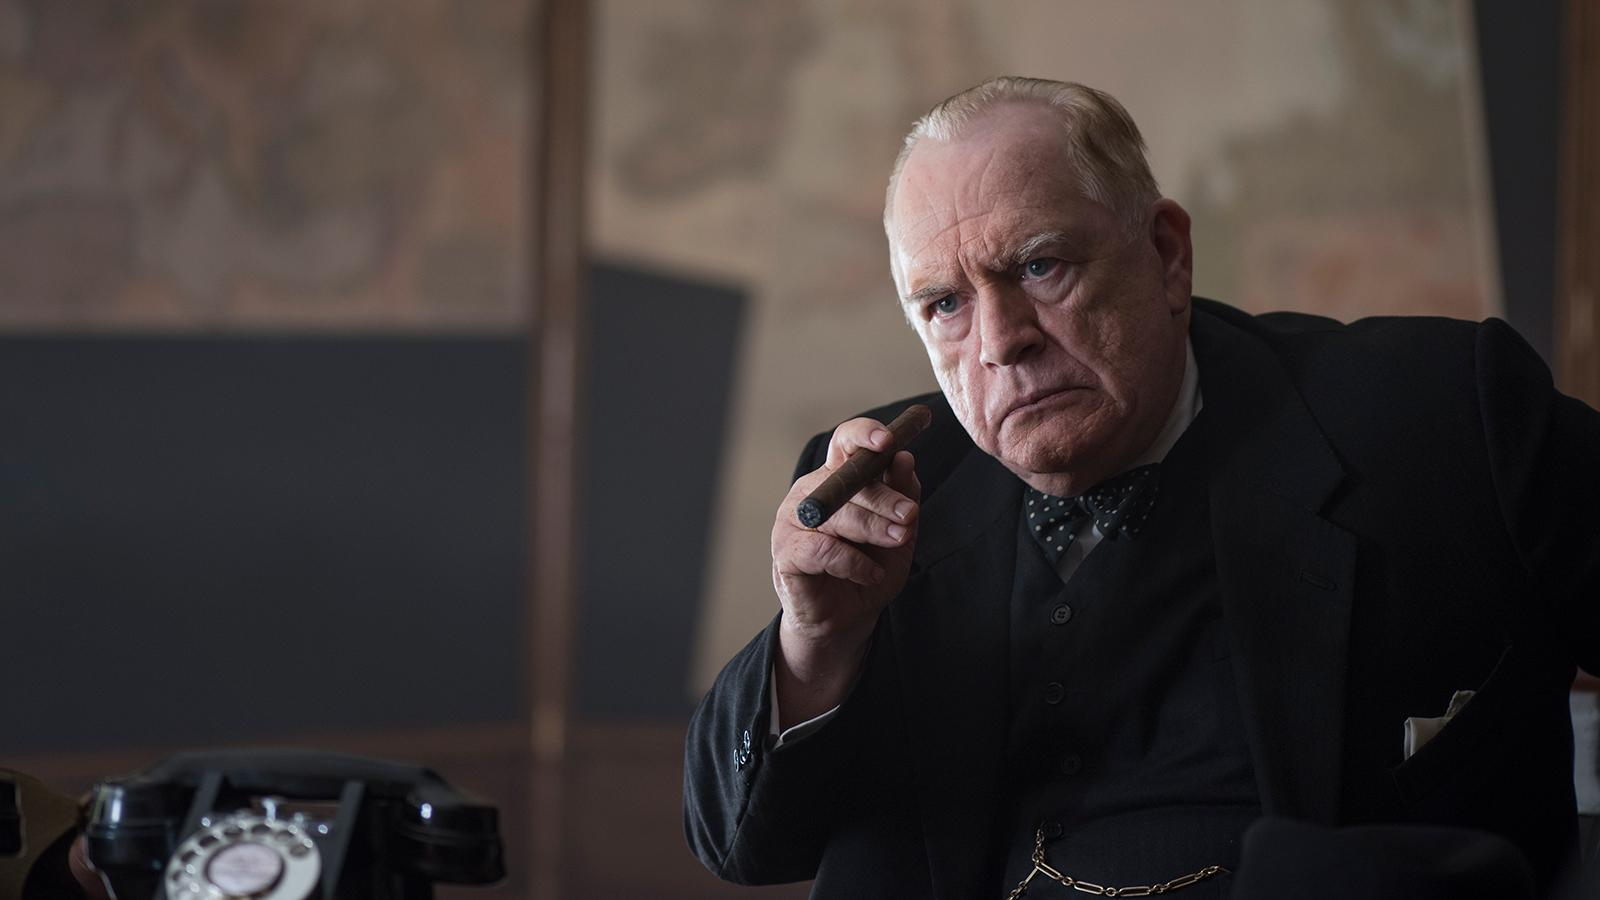 Cigars In Cinema: Brian Cox Portrays Sir Winston Churchill In New Film